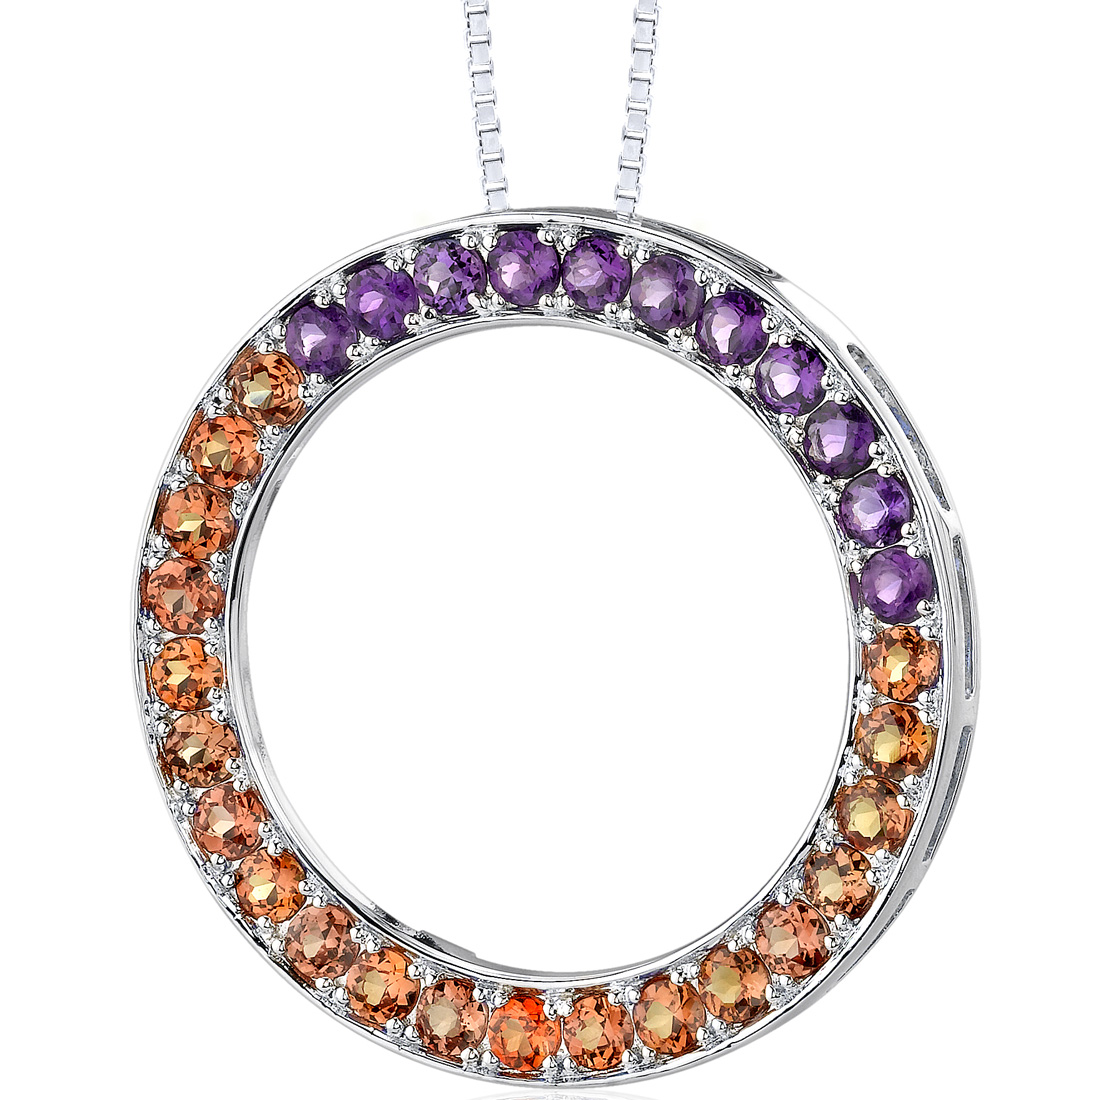 peora Sterling Silver 3.75 carats total weight Round shape Padparascha Sapphire and Amethyst Circle of Life Pendant Necklace at Sears.com